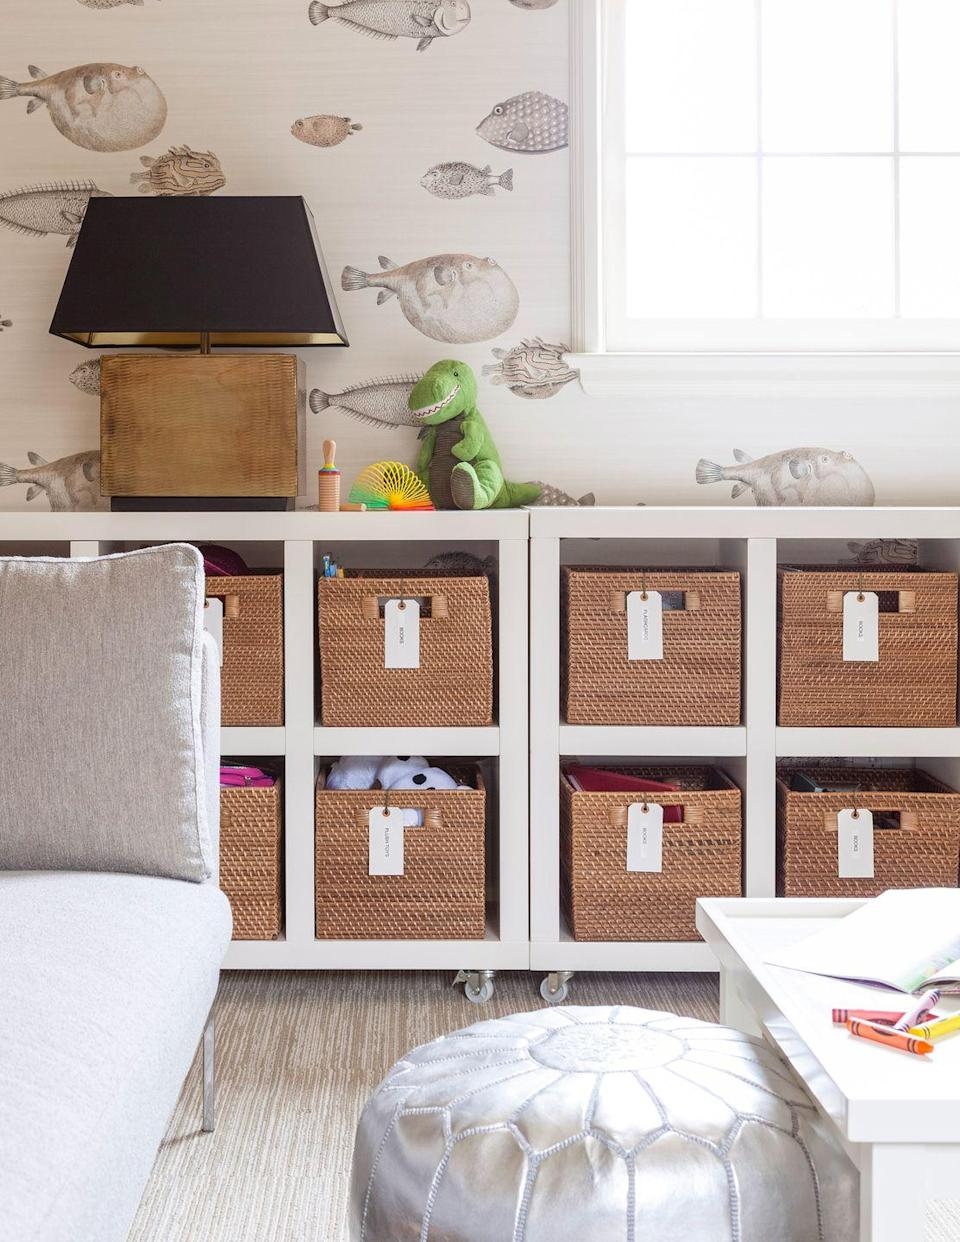 <p>A well-organized nursery will ensure a soothing setting for both baby and parents. Keep clutter to a minimum and essentials easy to find and grab with labeled containers in open cabinets. Then add some fanciful twists with playful neutral-hued wallpaper and metallic accents, like the silver pouf designer Jean Liu opted for here. </p>